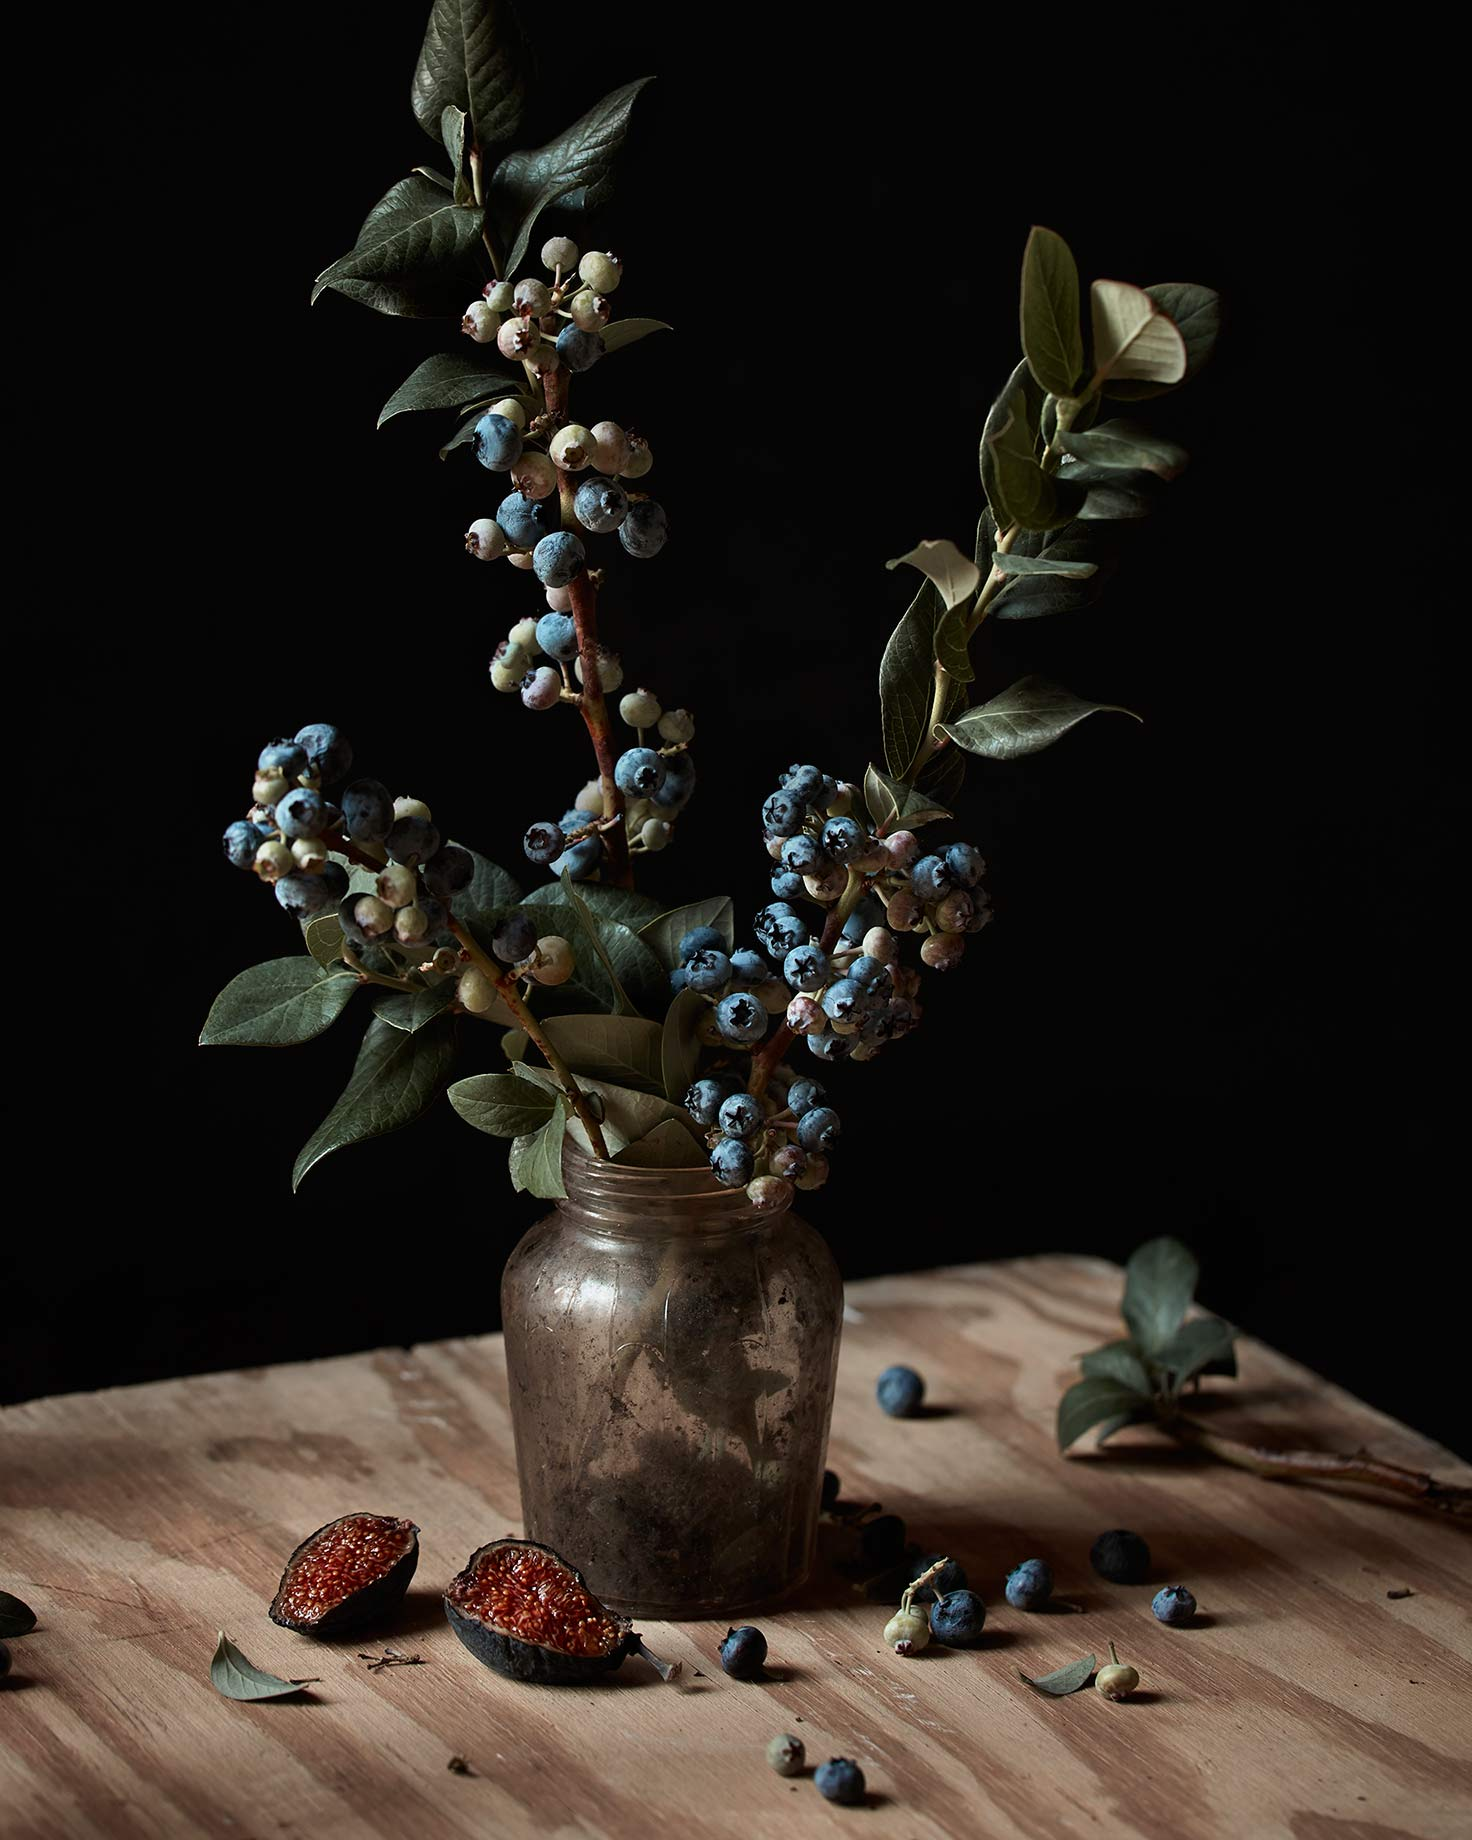 Blueberry bush branch in vase on tabletop.